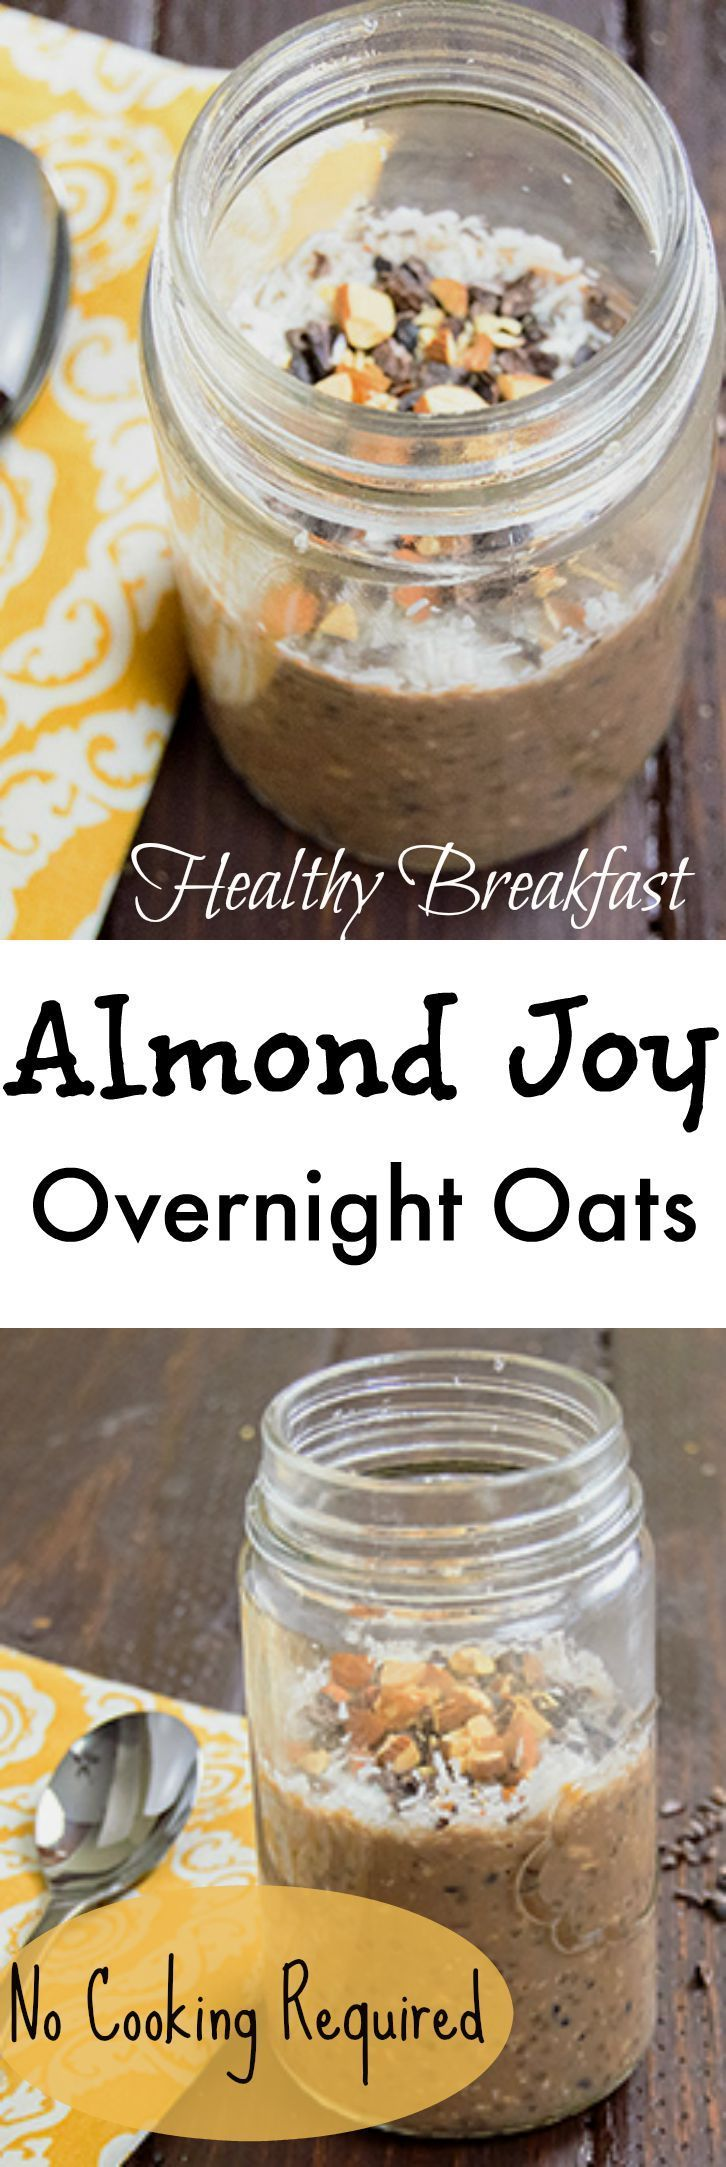 Start your day with healthy almond joy oats! These overnight oats don't require any cooking and are ready for you in the morning. They use figure friendly chia seeds and keep you full for hours! Gluten free, vegan, easy recipe!